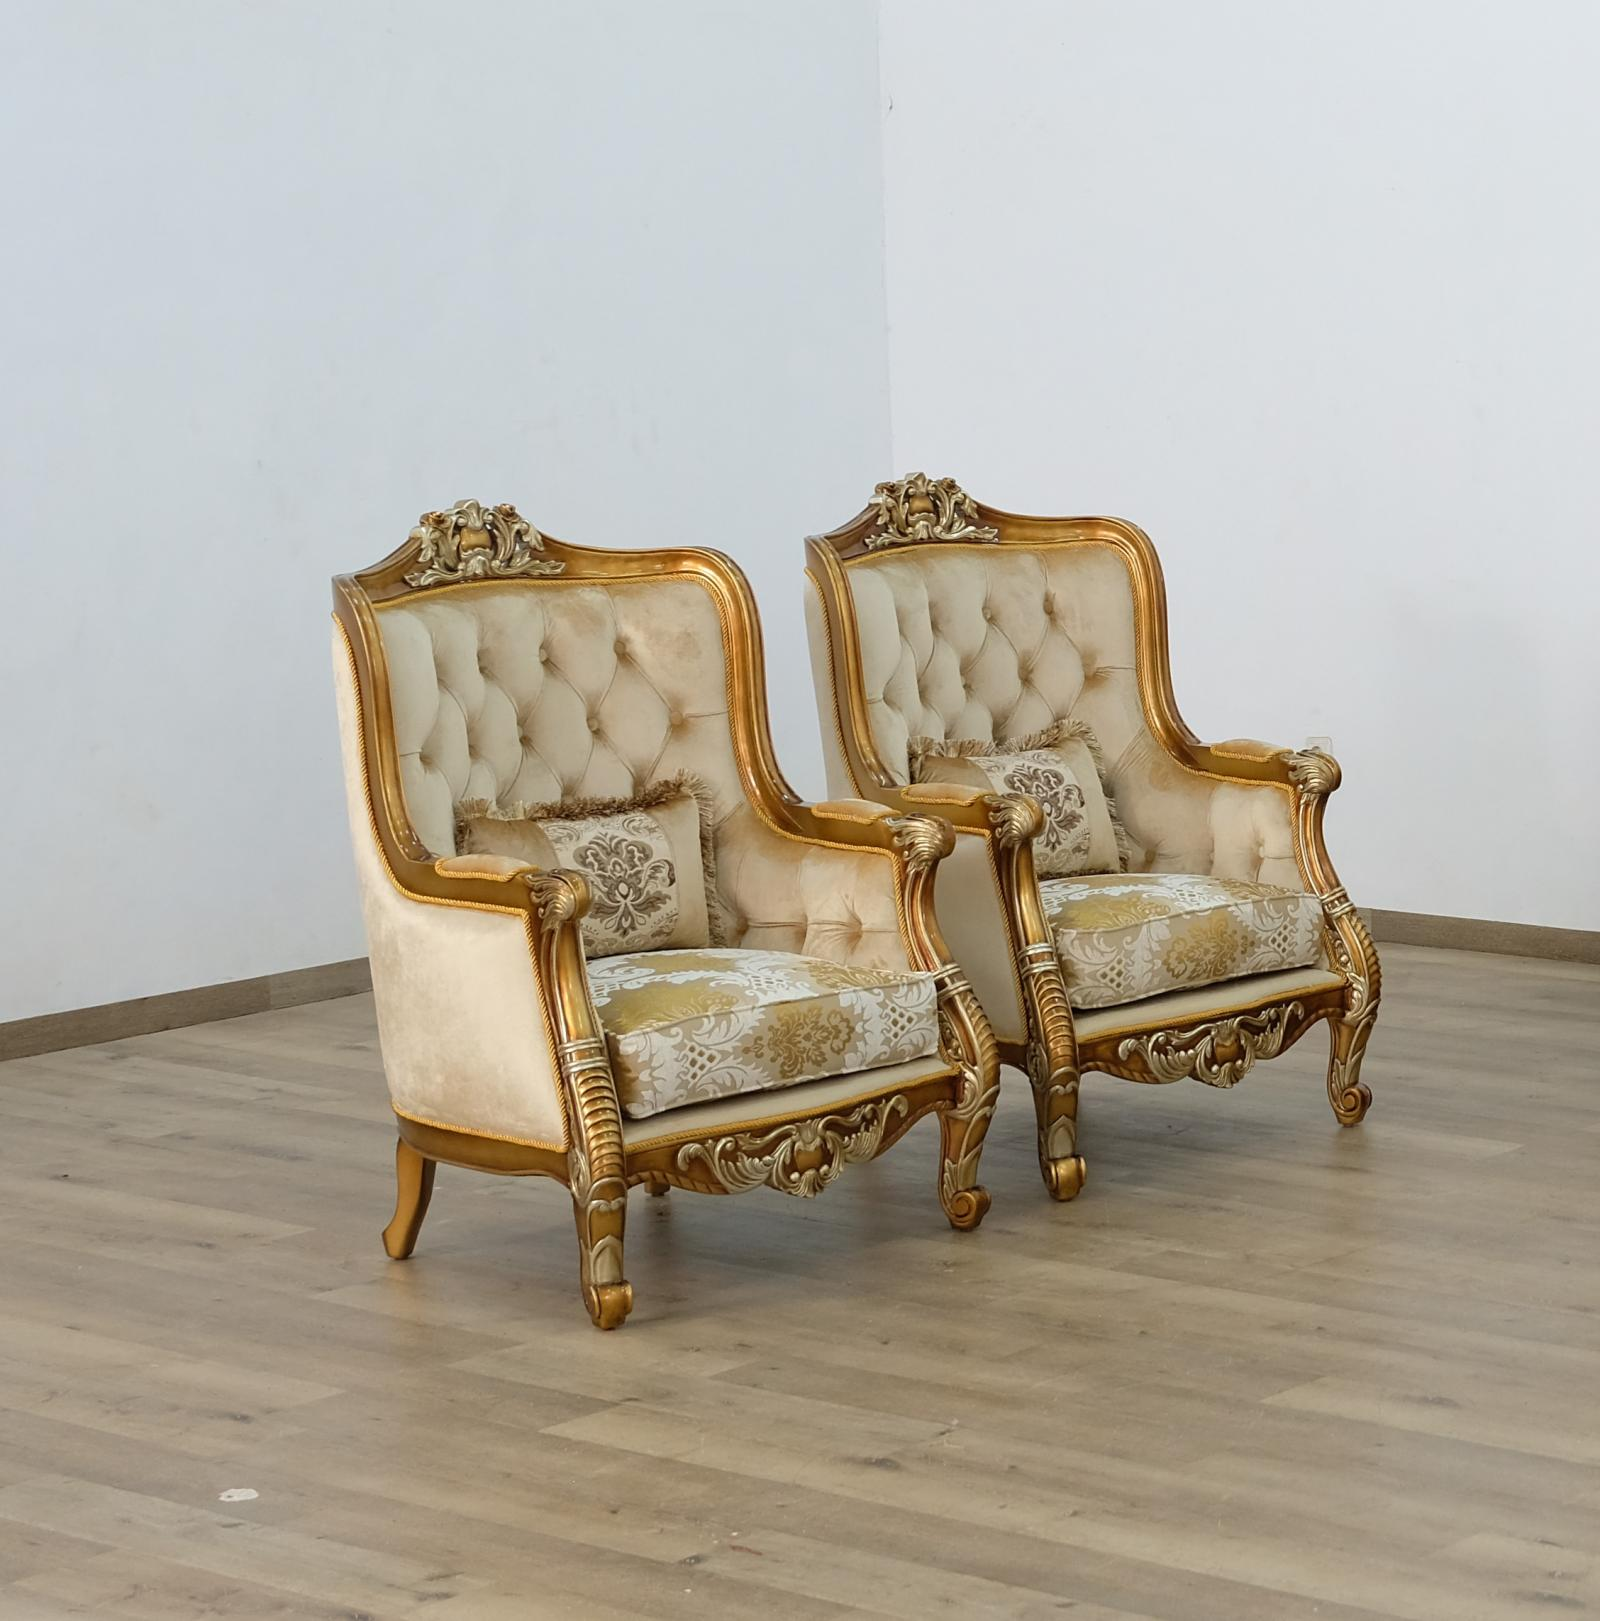 Classic  Traditional Brown  Gold  Antique Wood  Solid Hardwood and Fabric Arm Chair Set EUROPEAN FURNITURE 68587-C-Set-2